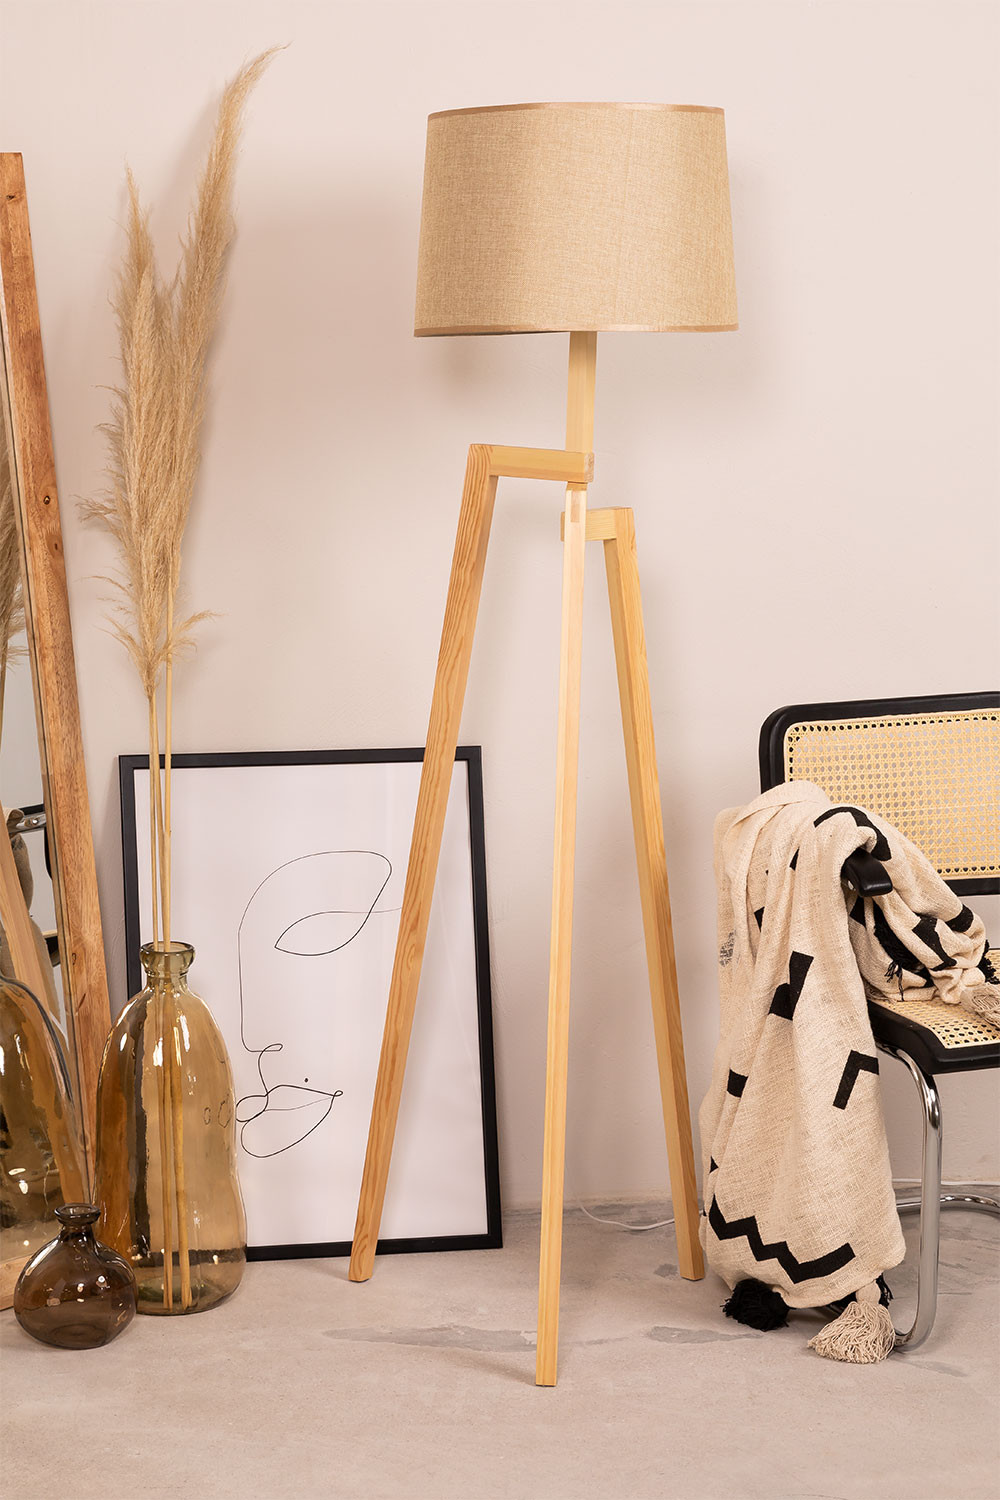 Floor lamp Sulaw, gallery image 1